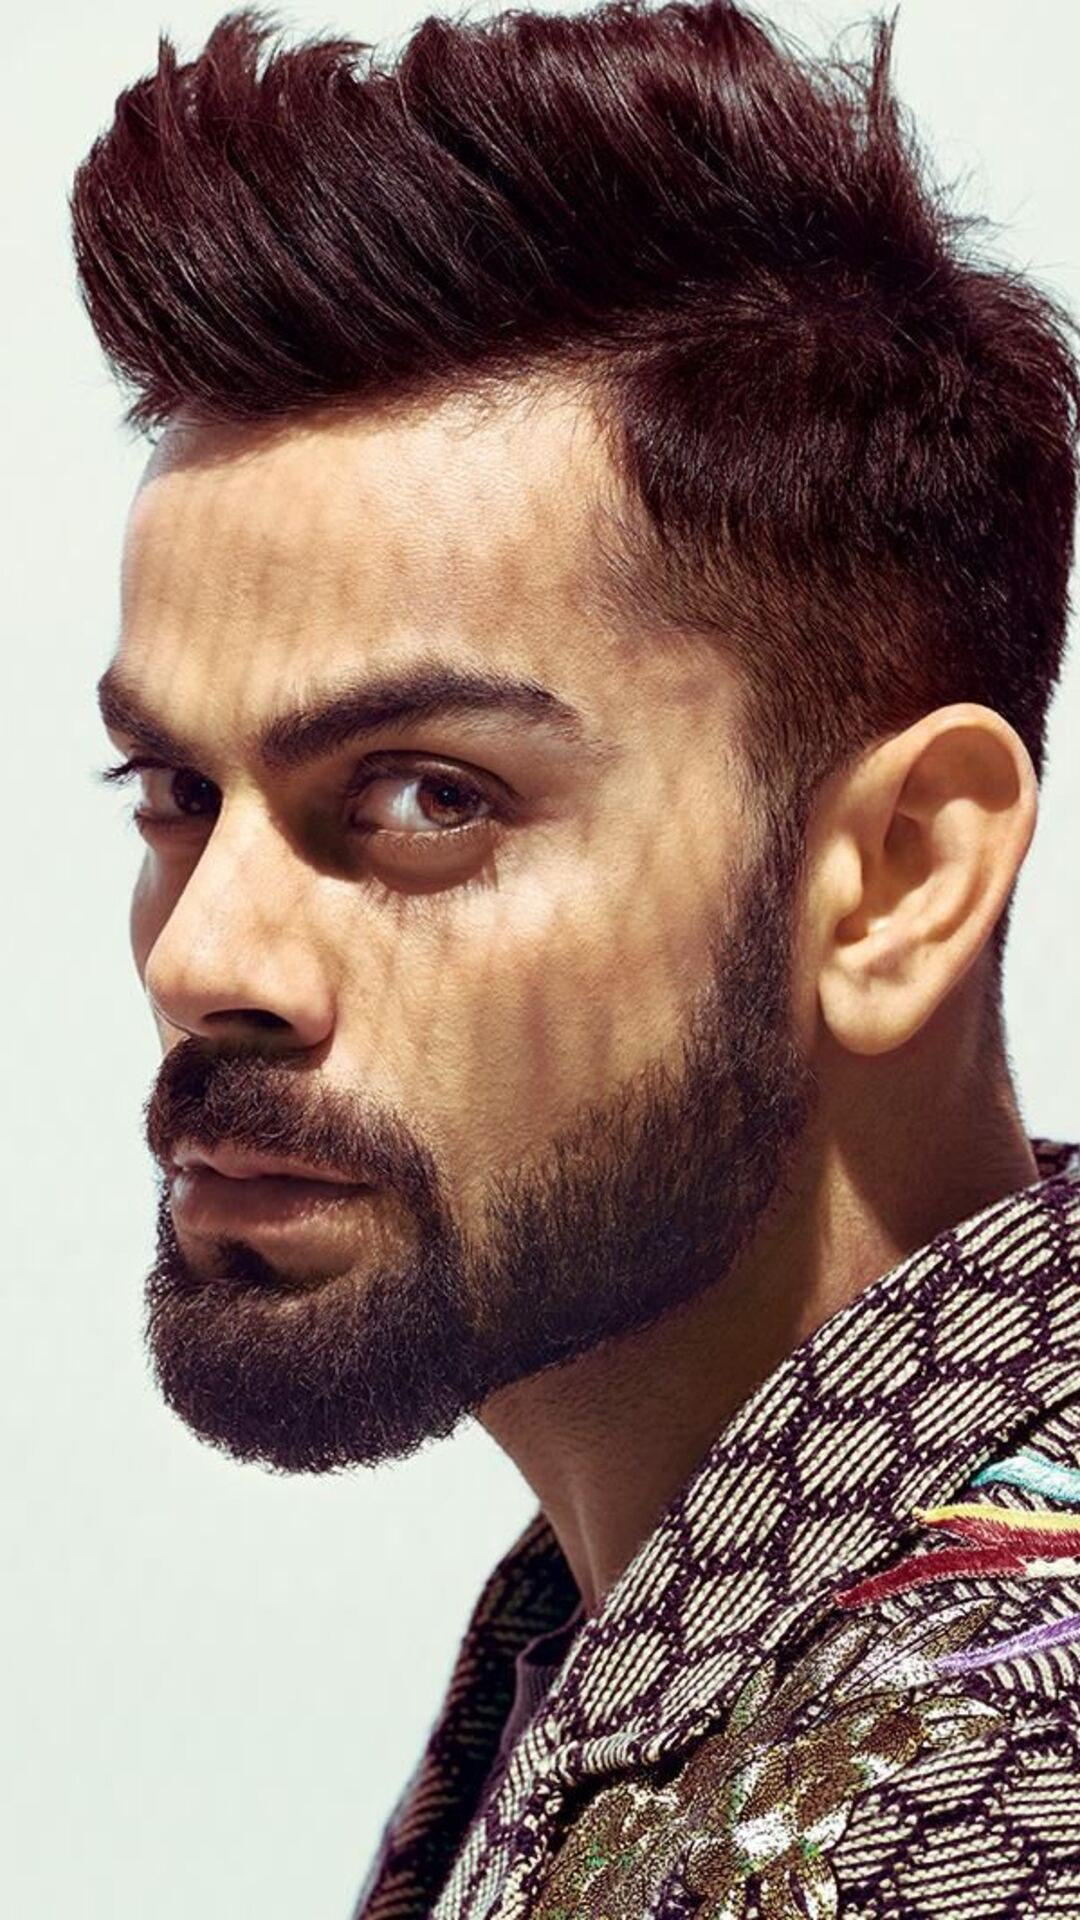 1080x1920 Virat Kohli Hd Iphone 76s6 Plus Pixel Xl One Plus 33t